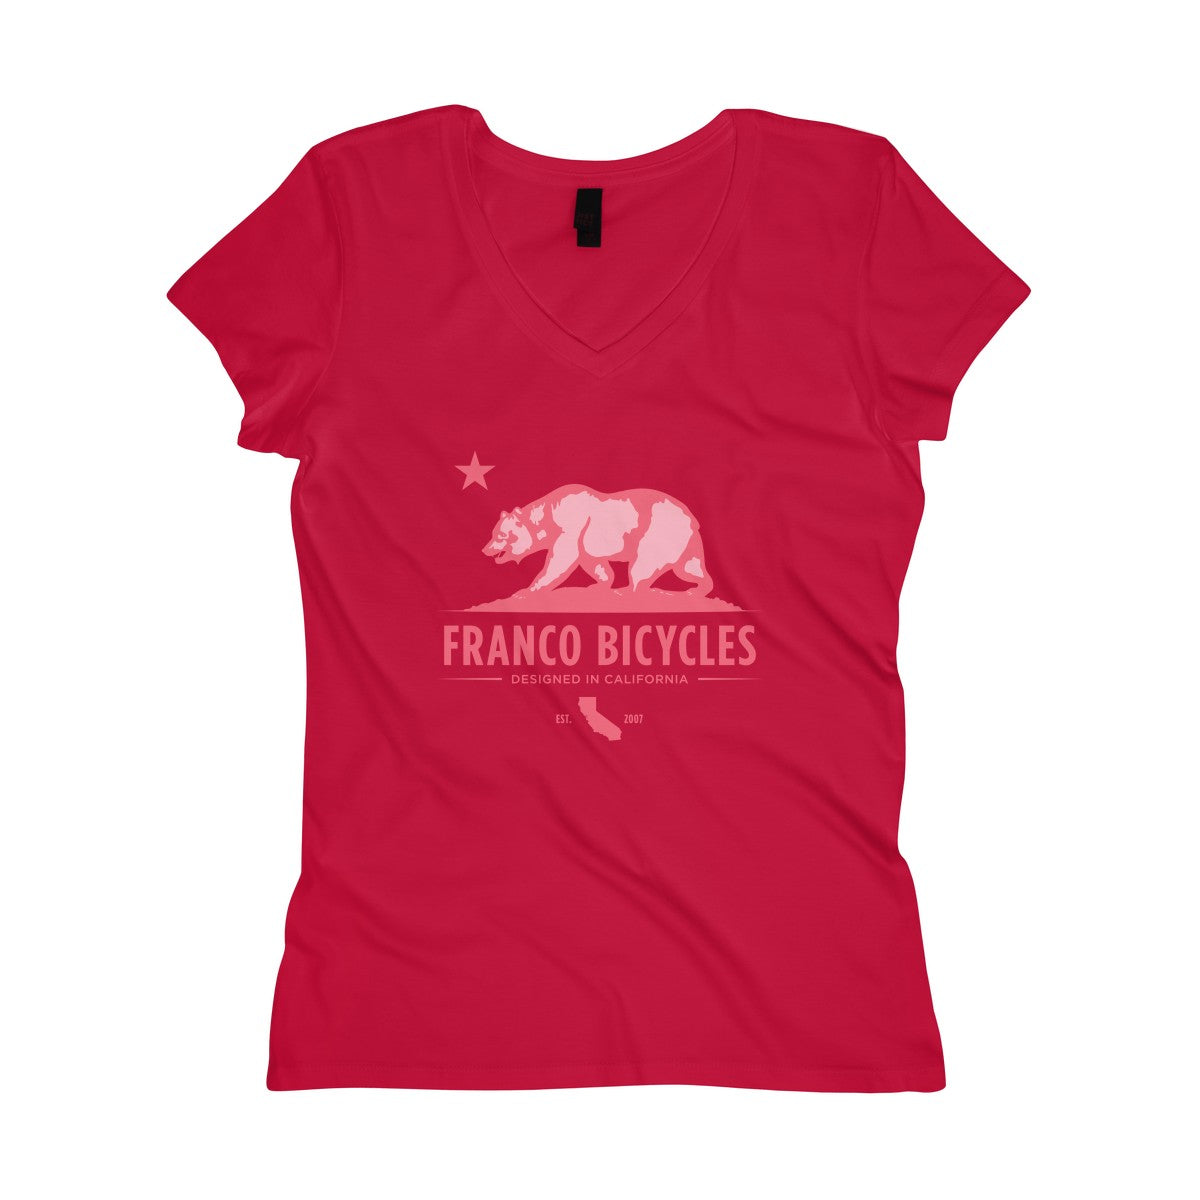 The Women's Bear Tee